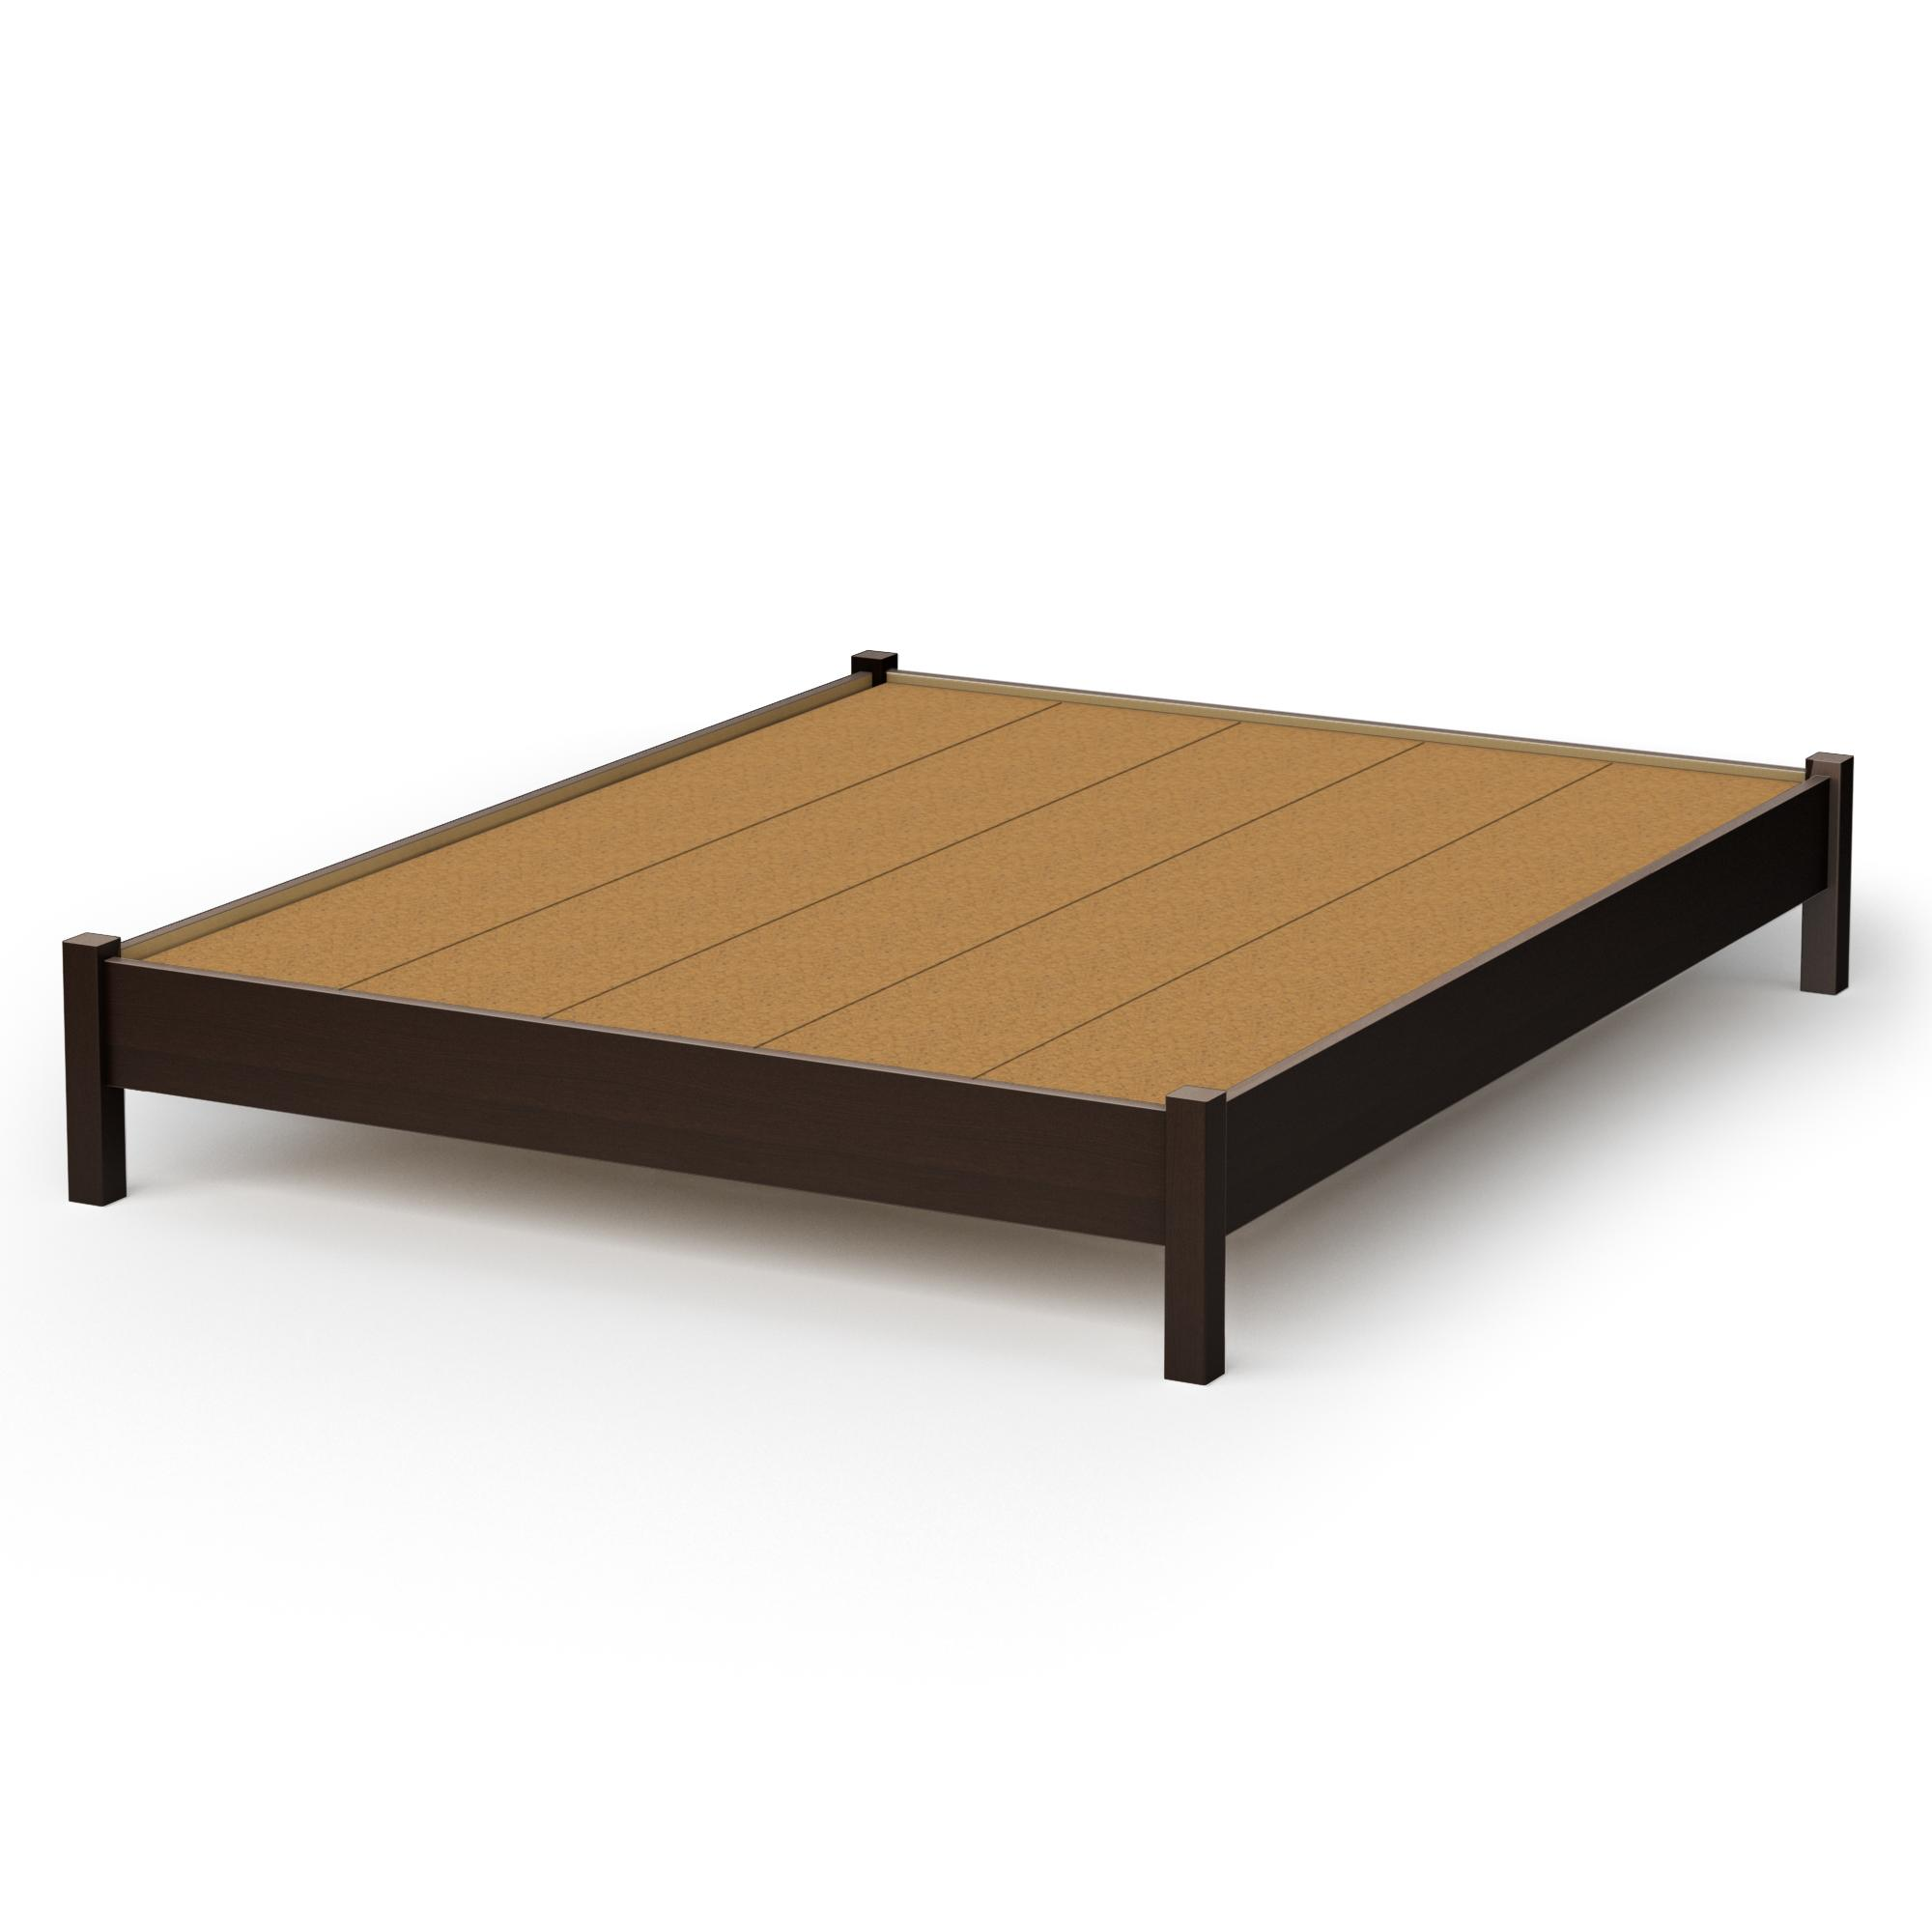 "South Shore Queen Platform Bed (60"") by OJ Commerce3159203 - $307.04"